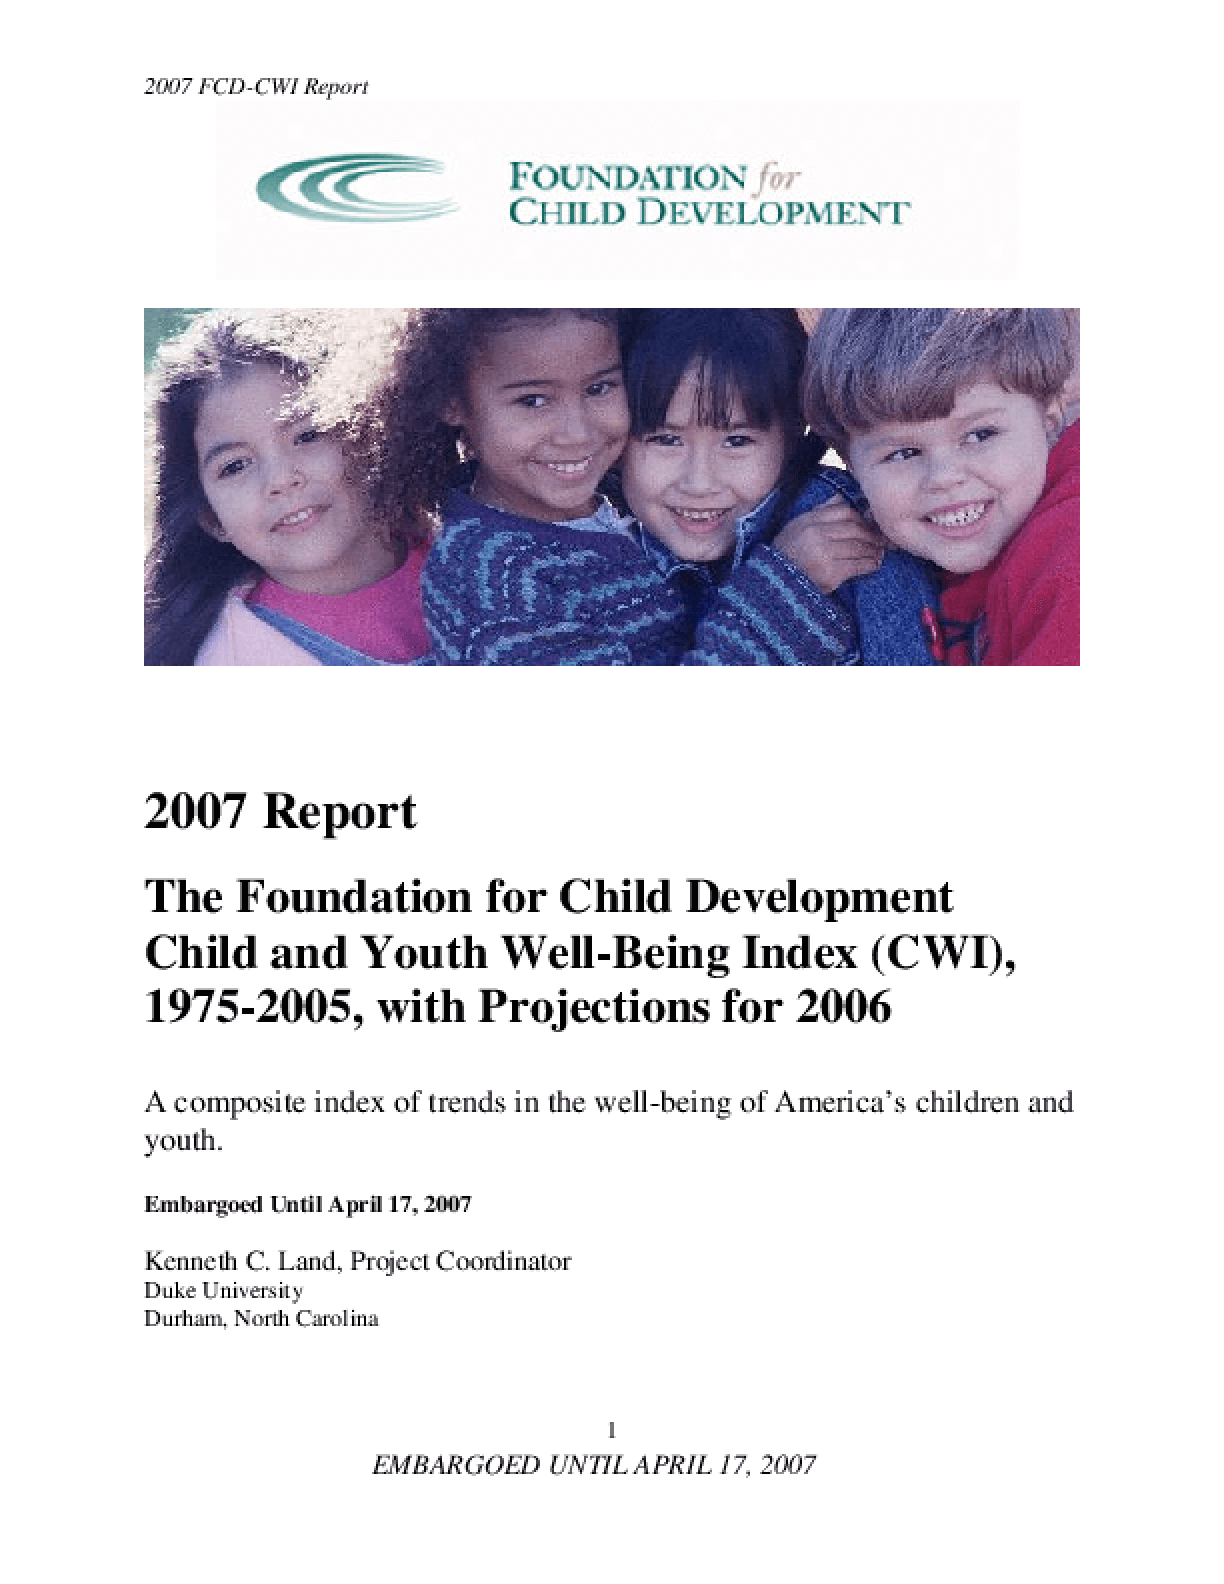 2007 Index of Child Well-Being